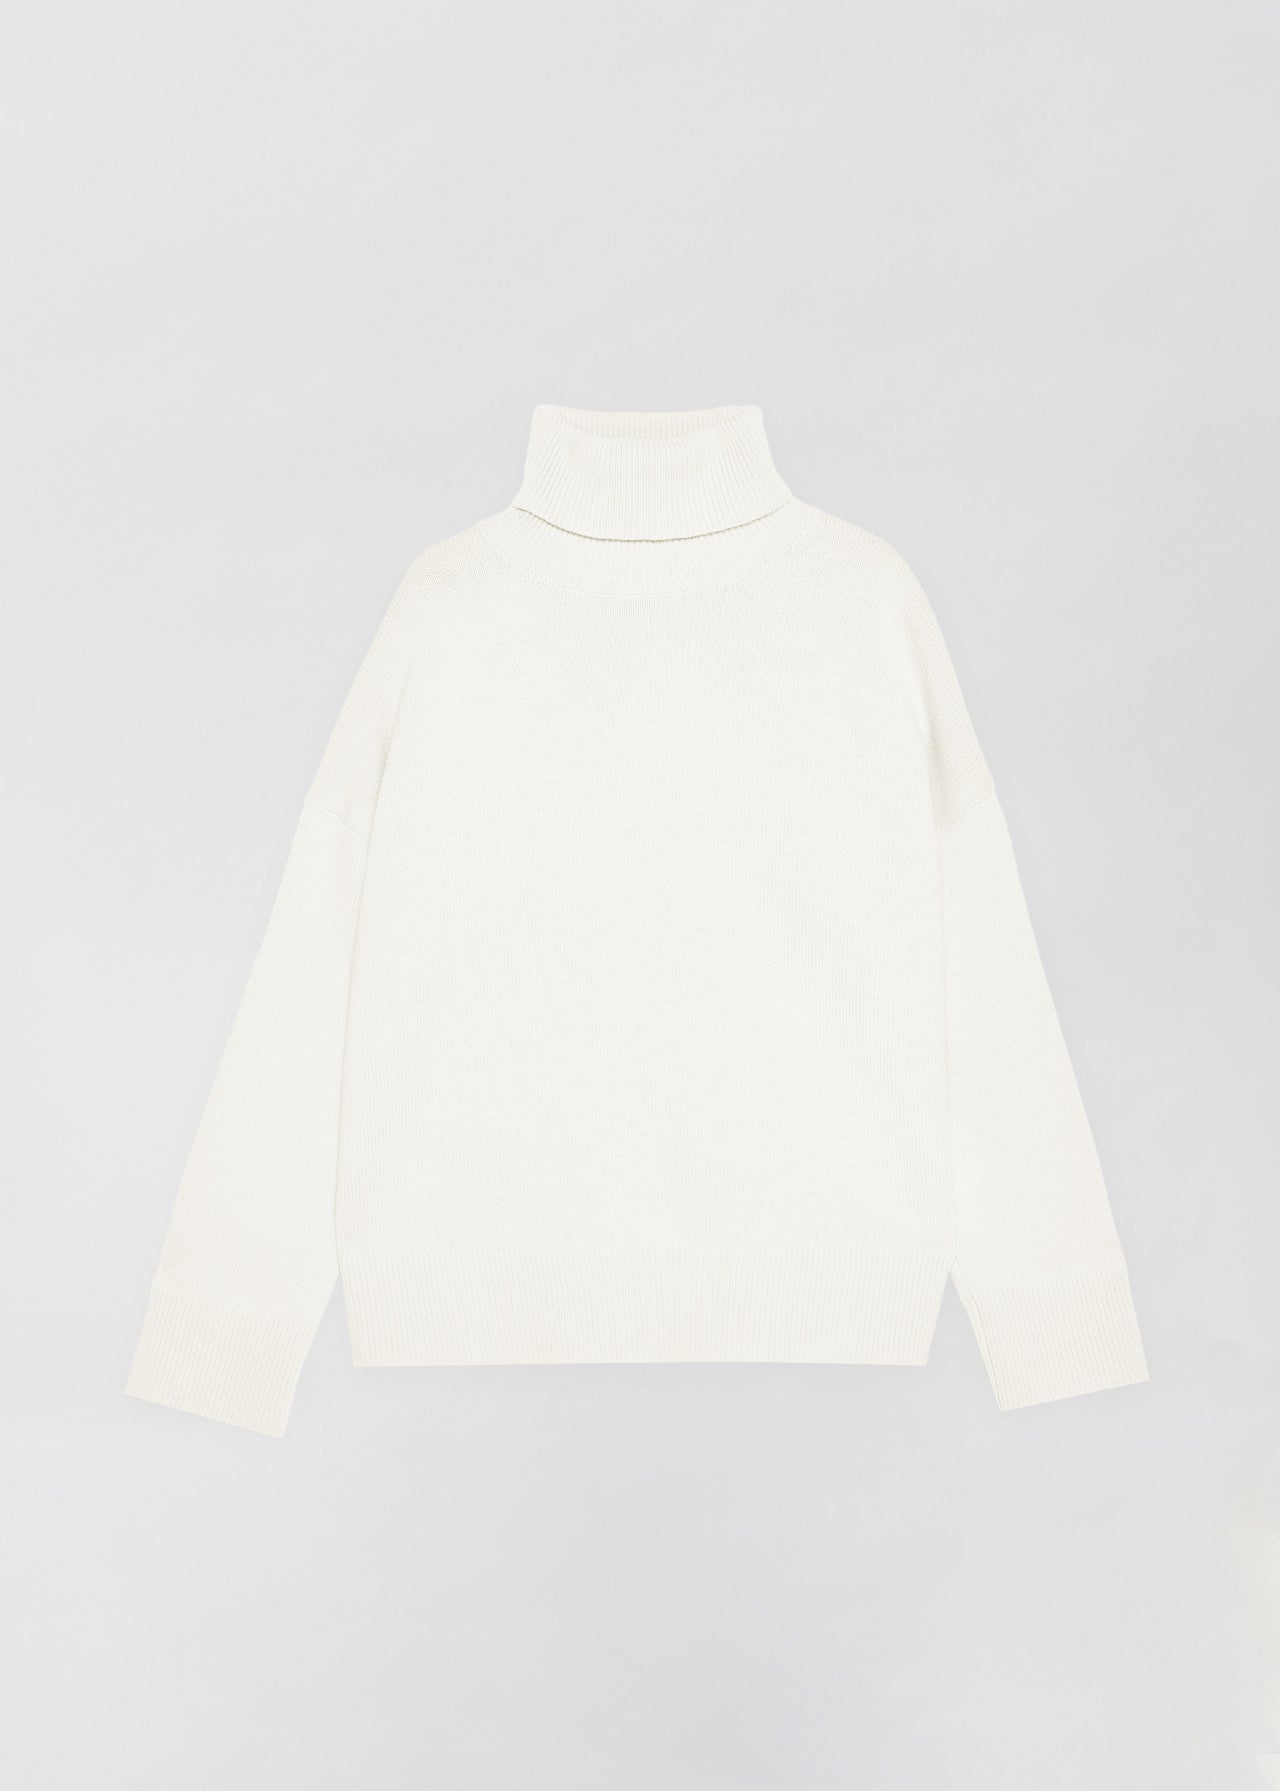 Ivory Boxy Turtleneck Sweater, Black A-Line Skirt - CO